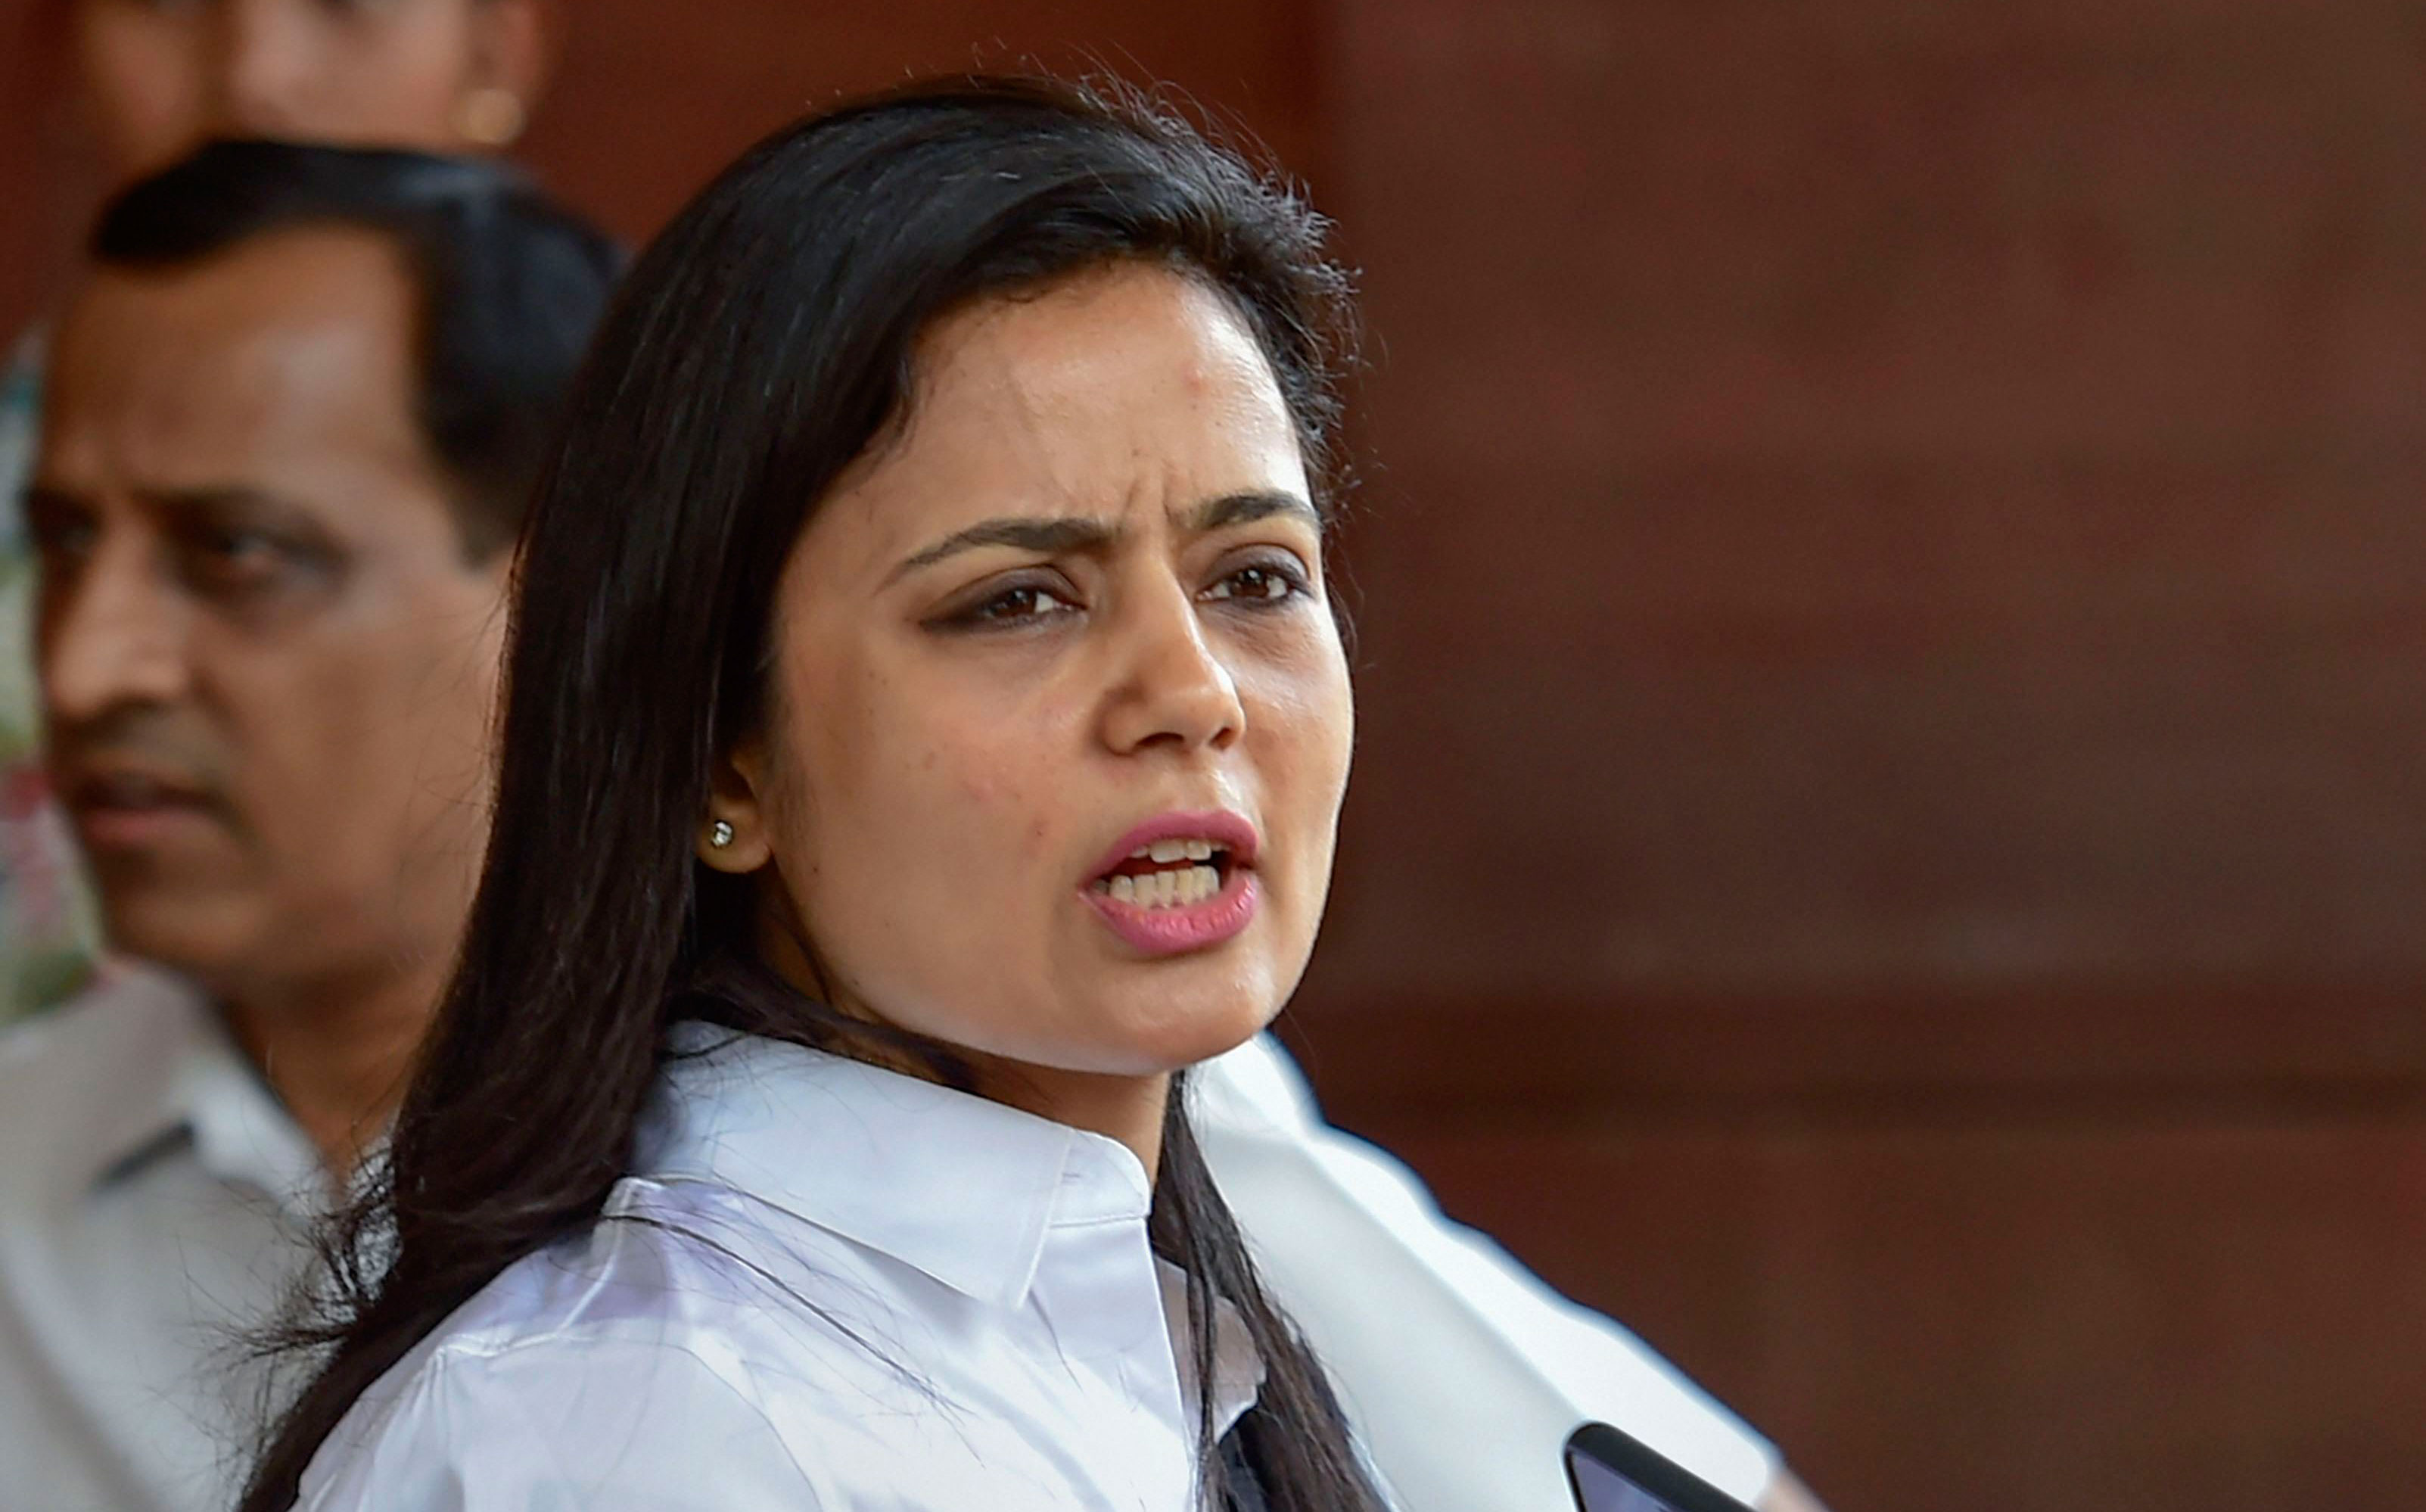 The clumsy and ill-conceived attack on Trinamul Congress MP Mahua Moitra came from a cabal of crude, regime-paaltu anchors working hand in glove with Westernized, sophisticated, English-fluent tenants of the Lutyens bungalows in close proximity to 7, Race Course Road